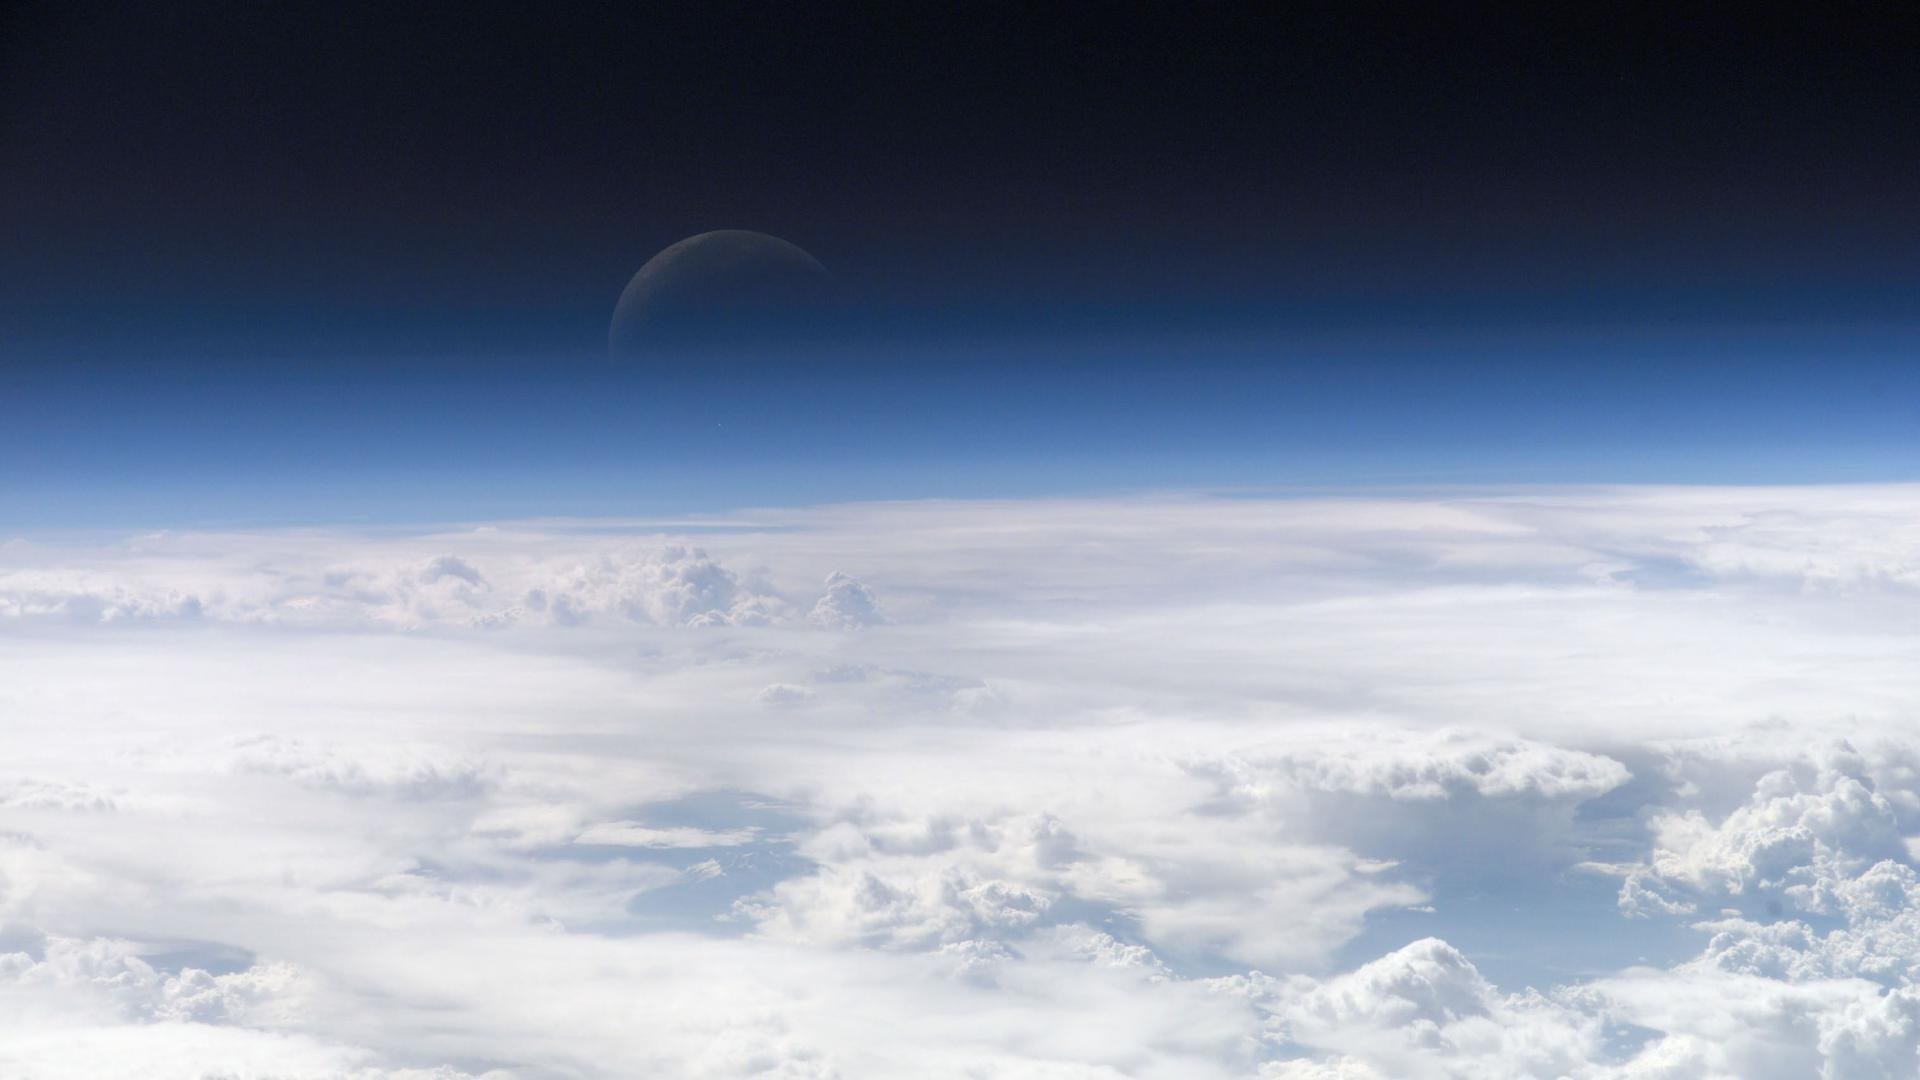 Top of the atmosphere view from ISS